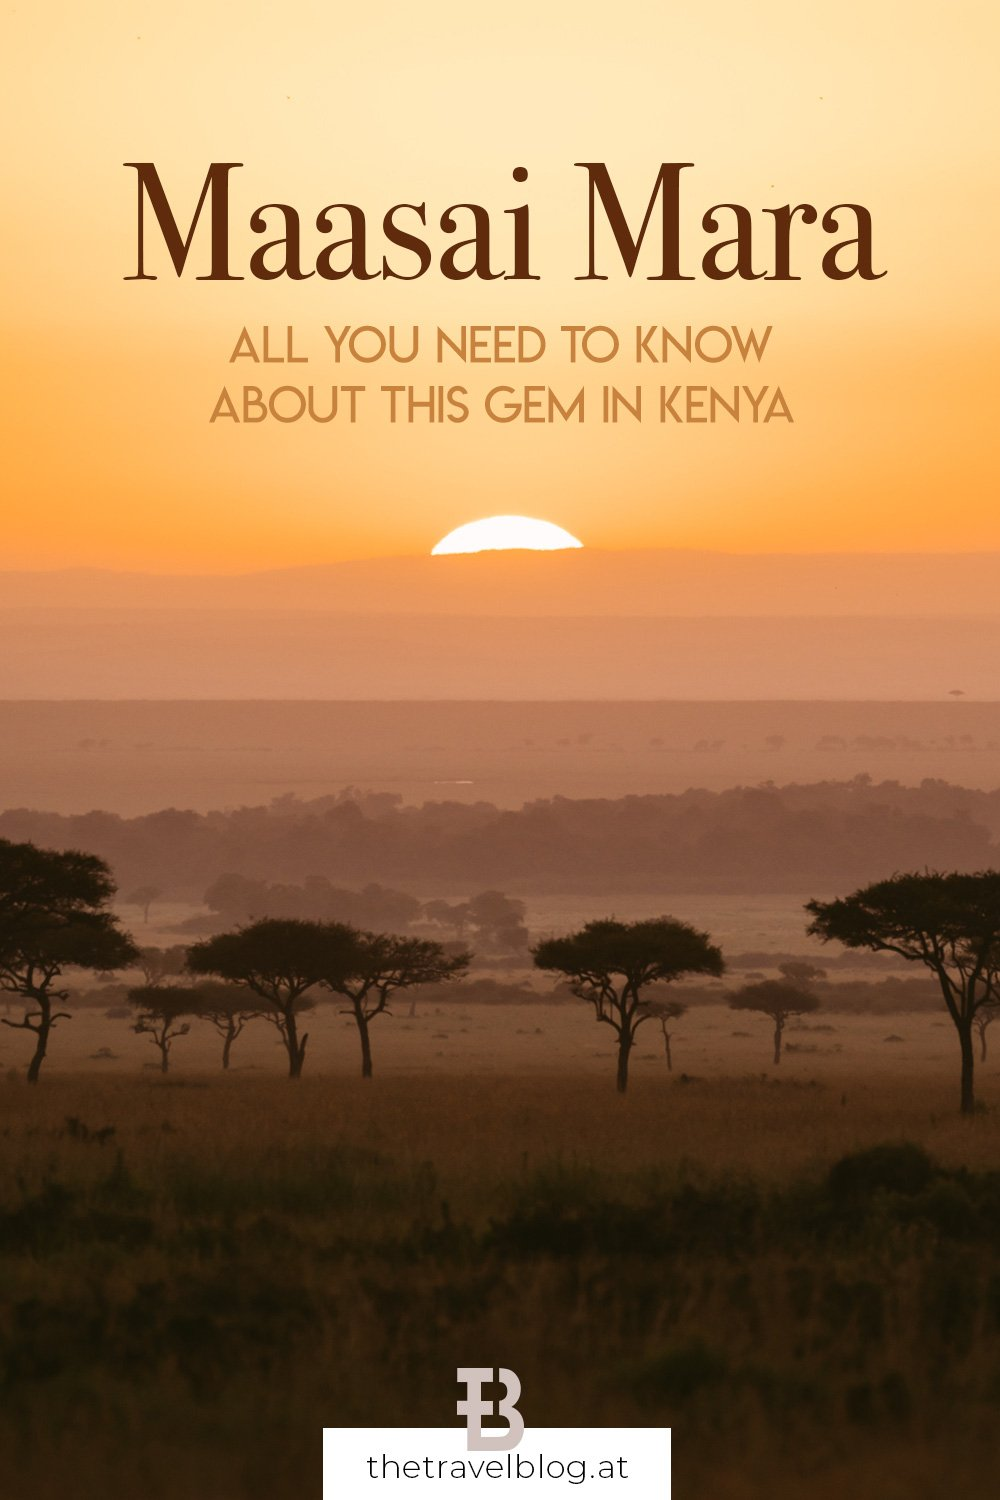 Everything you need to know about the Maasai Mara in Kenya